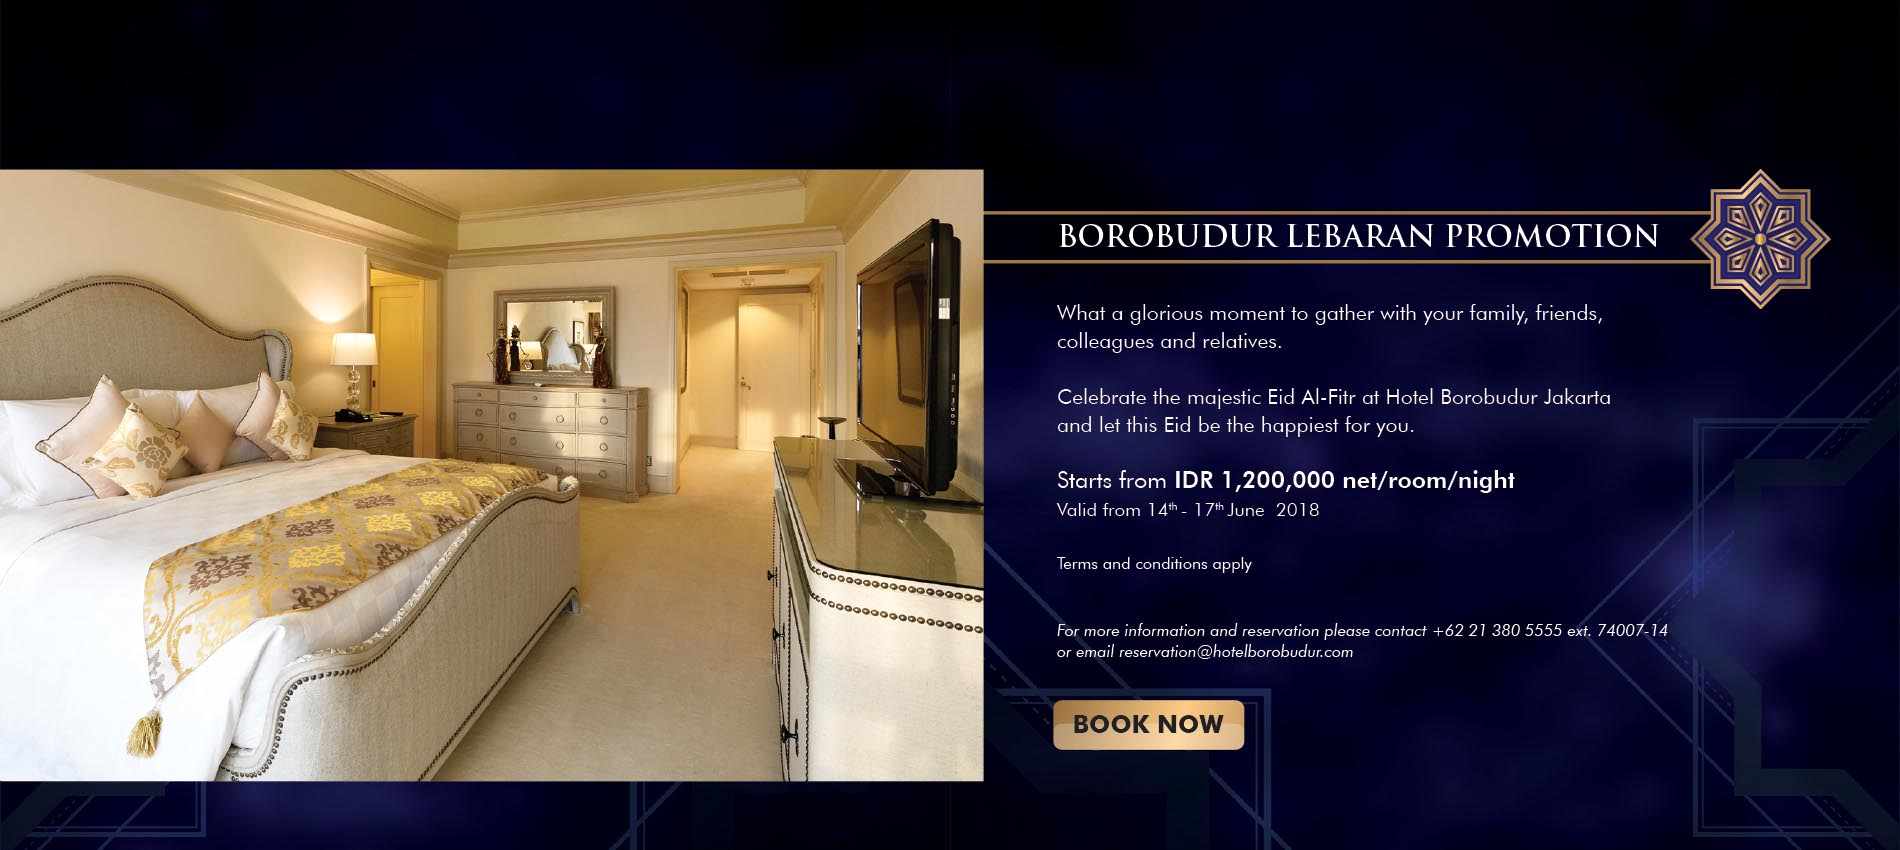 Home Luxury Borobudur Hotel Jakarta Discovery Hotels Resorts Previous Taman